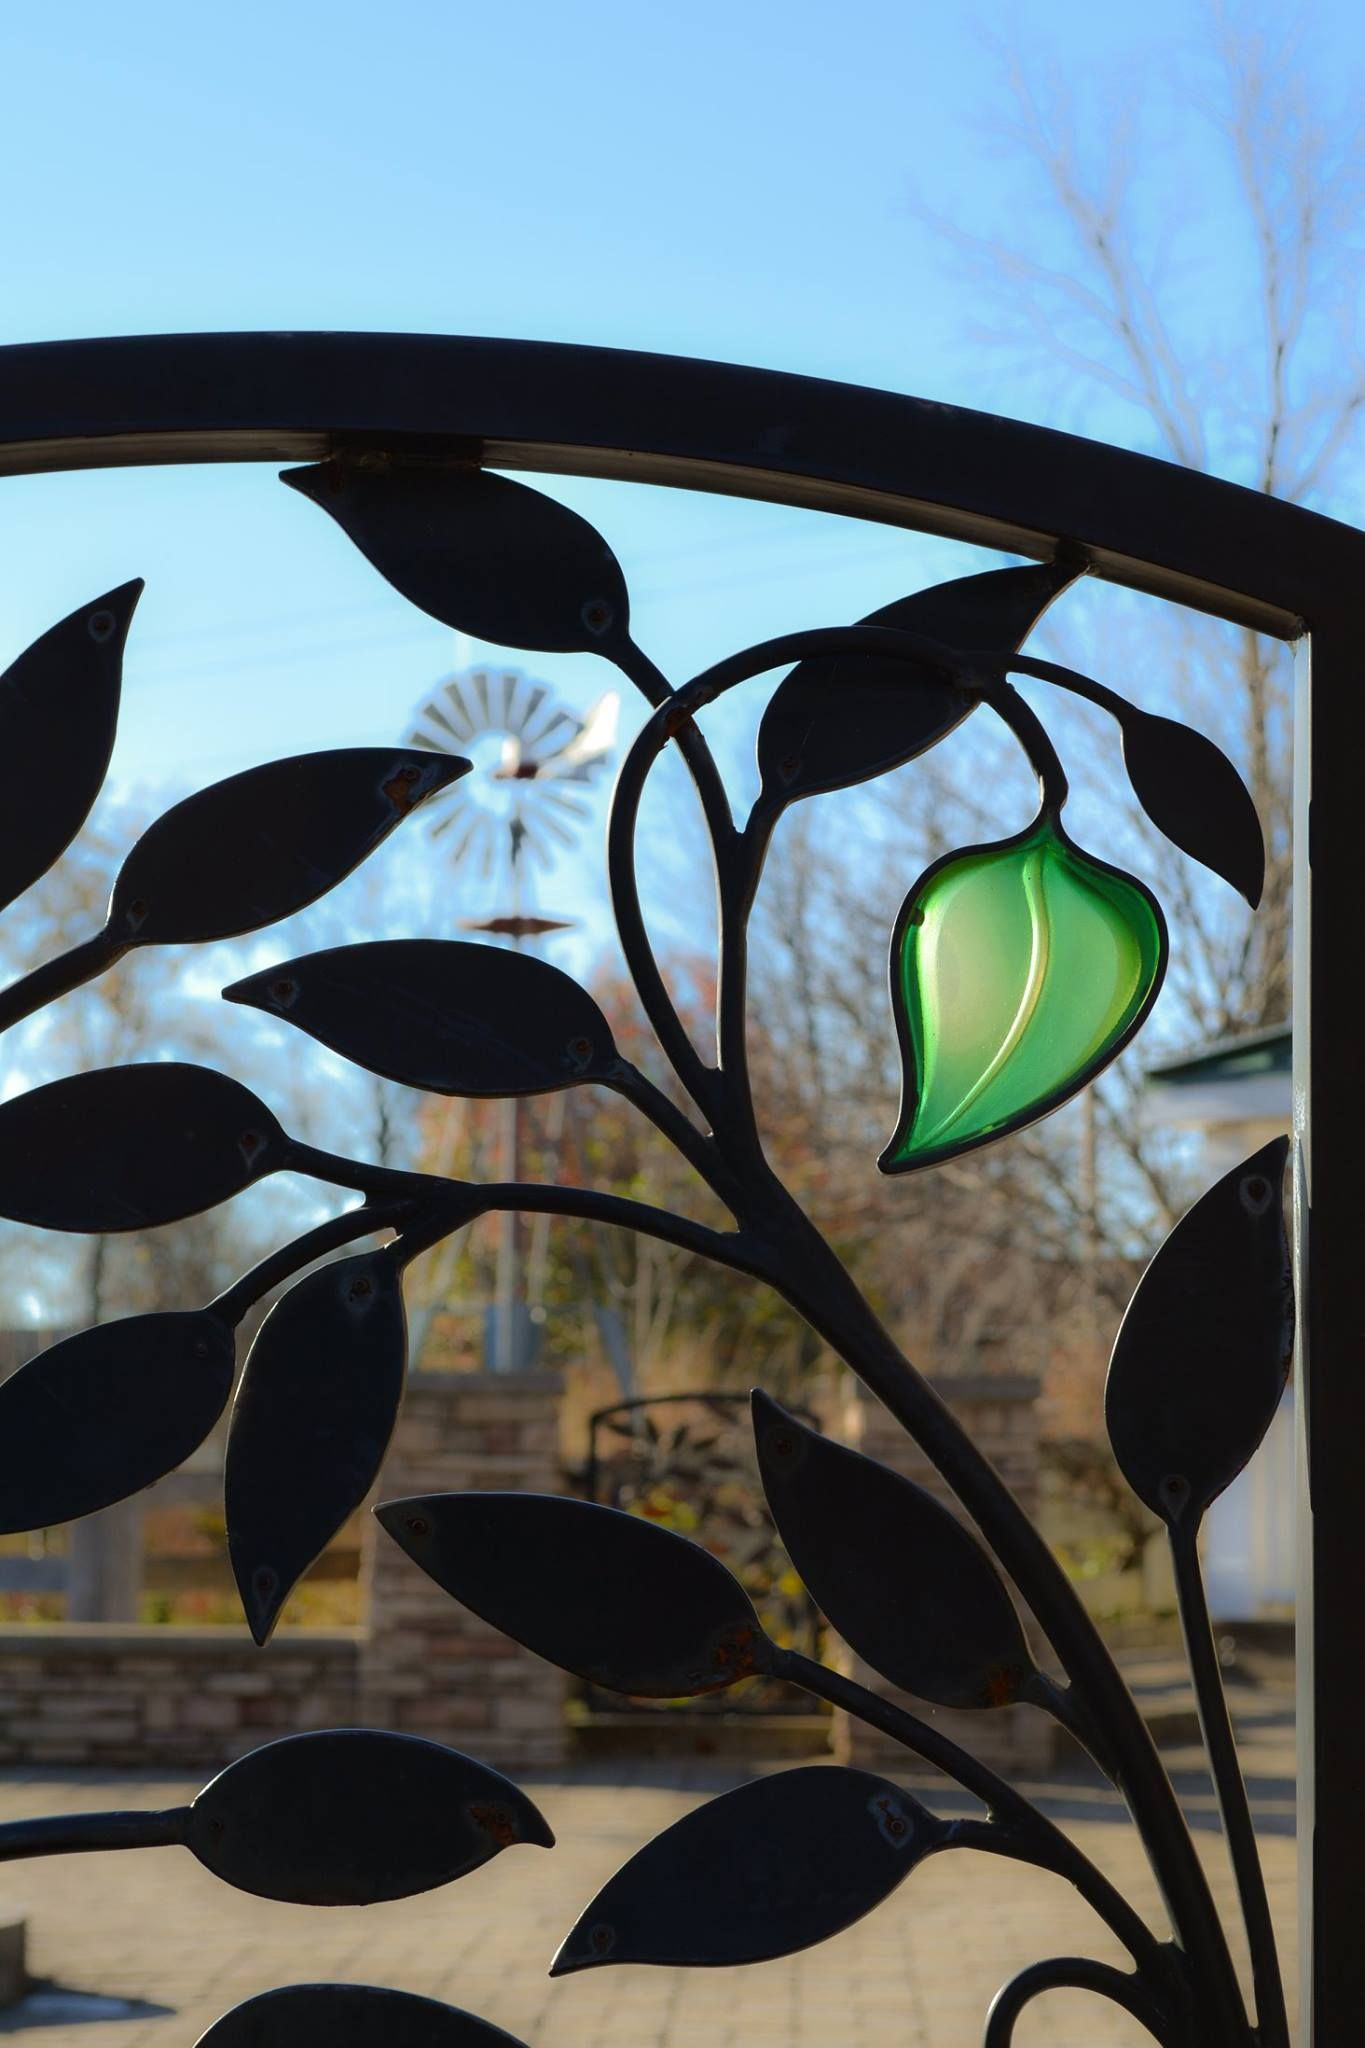 Donor Vine Garden Gate designed and fabricated for